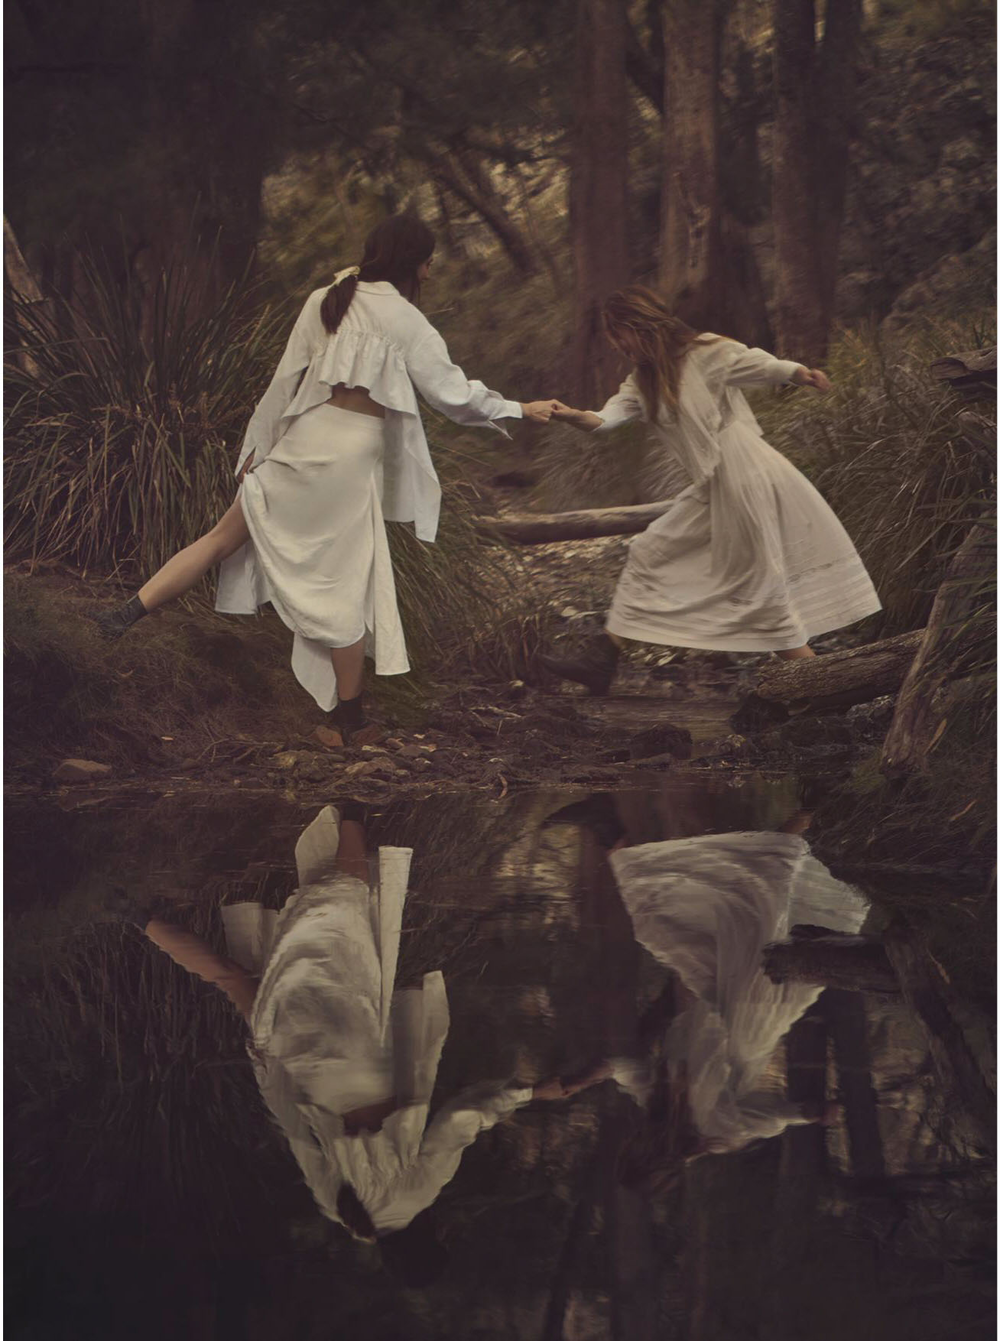 4ab8b-teresa-palmer-phoebe-tonkin-by-will-davidson-for-vogue-australia-march-2015-13-1.png